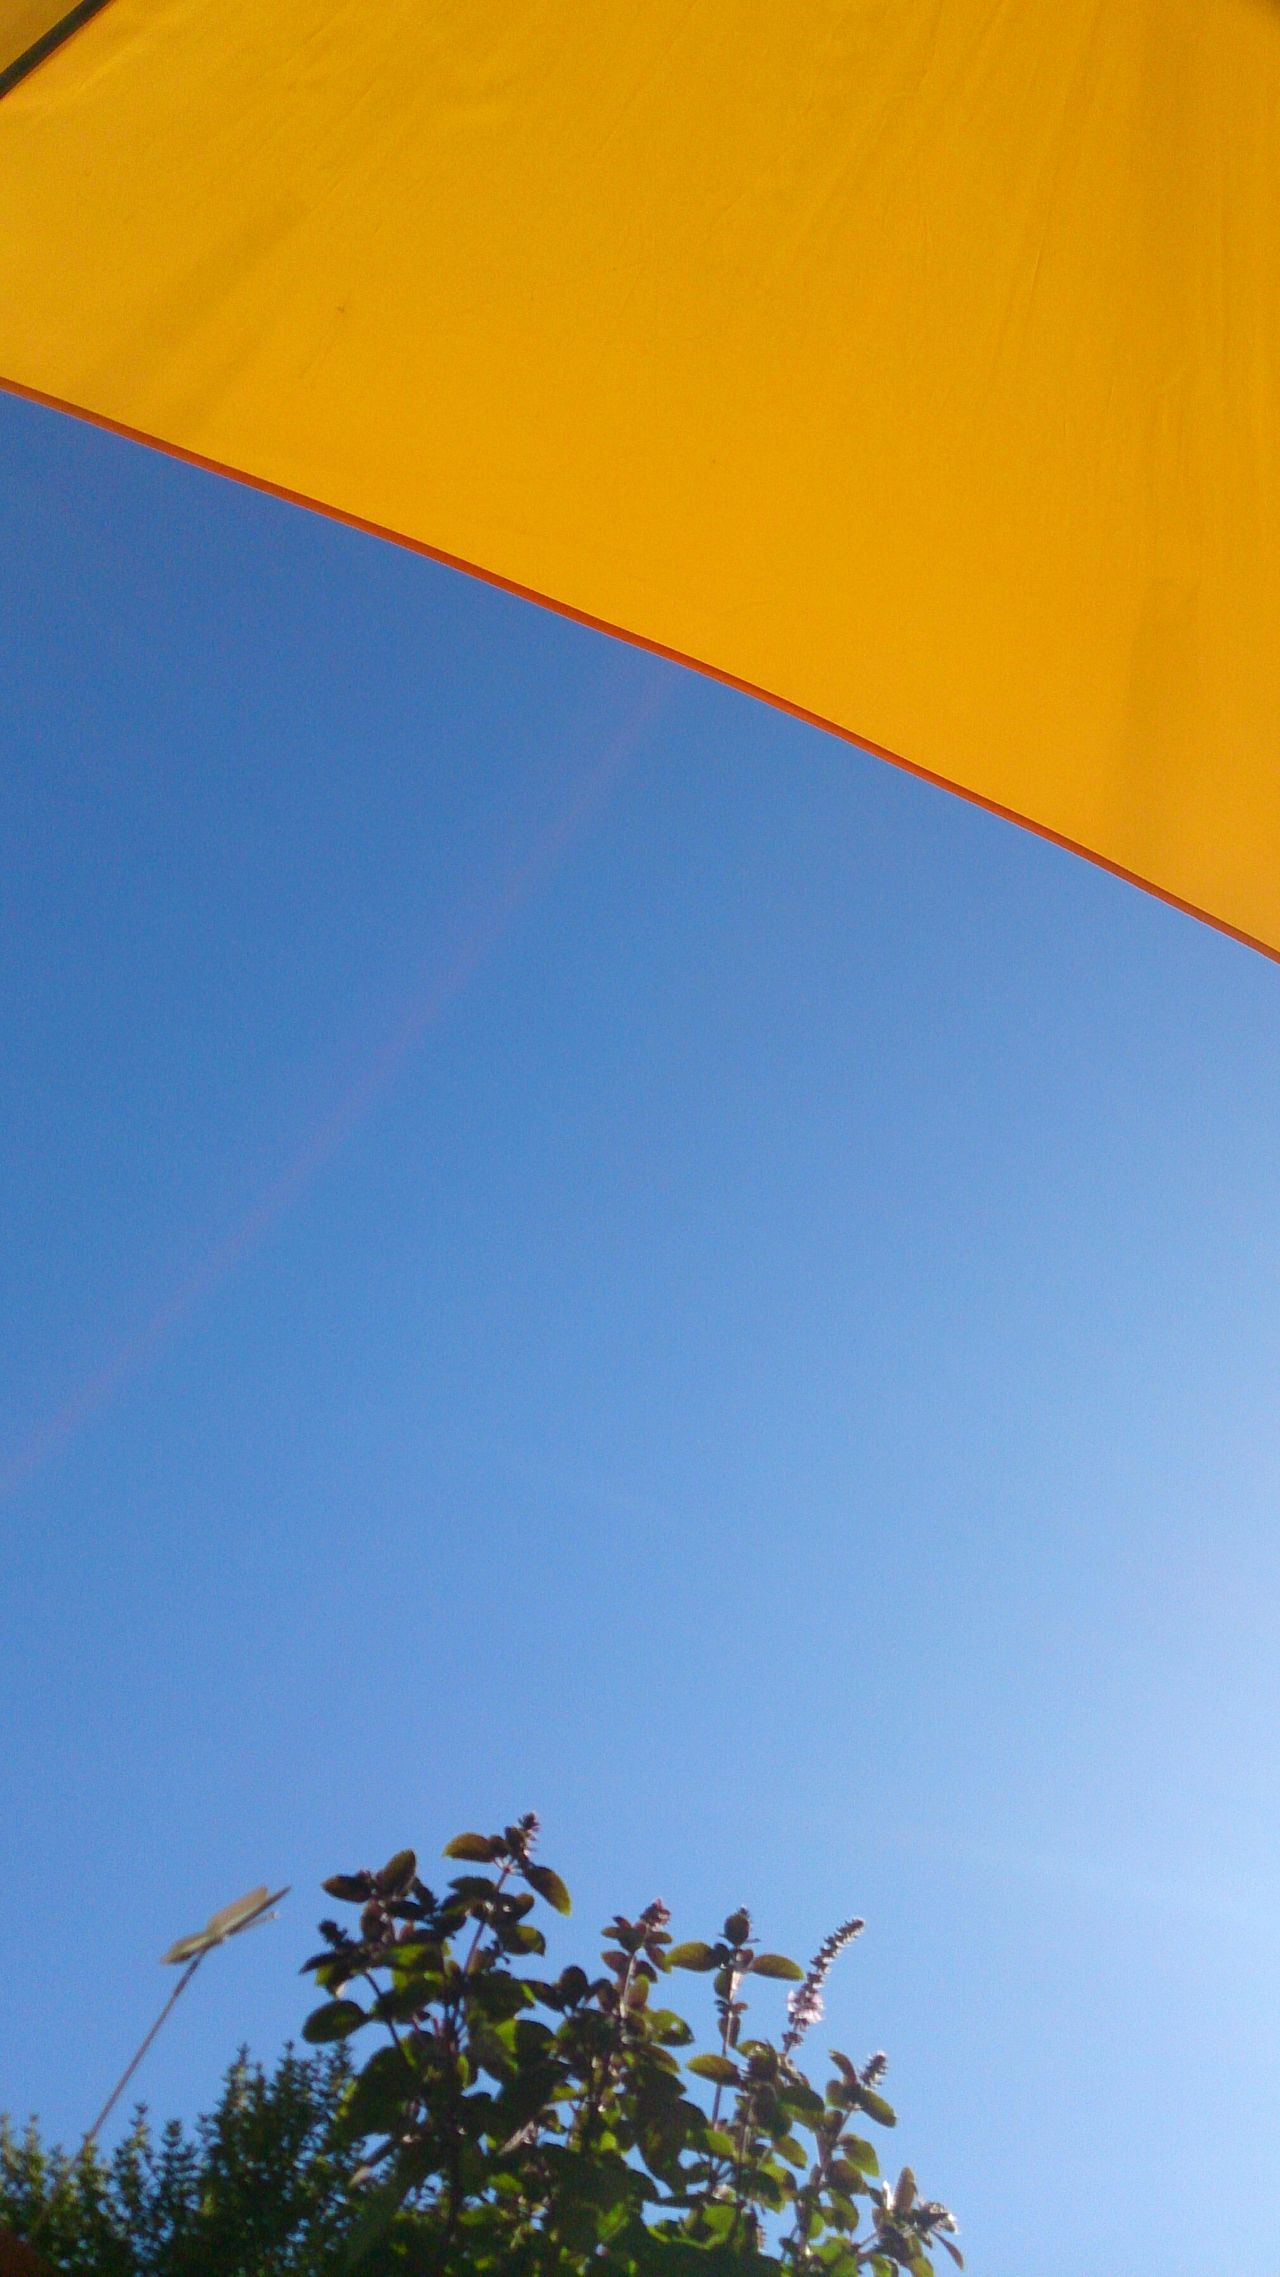 Blue Yellow Clear Sky Outdoors No People Tree Sky Close-up Day Clock Summer Leisure Leisure Time Parasol Textures And Surfaces Pattern, Texture, Shape And Form Colour Geometric Shape Holiday Sun Nofilter Warm Sunbathing Look At The Sky Herb